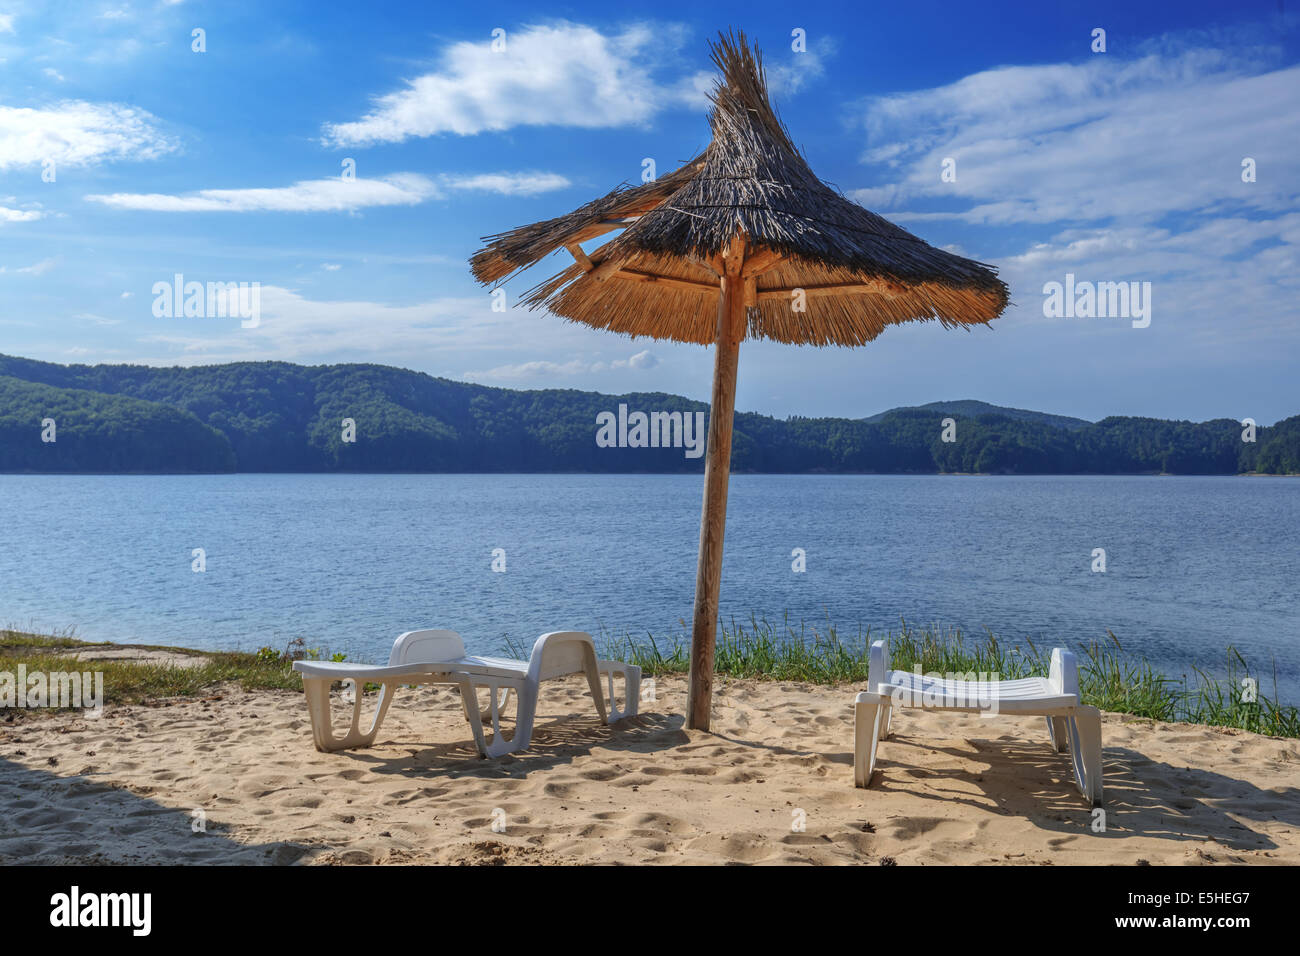 deck-chair and parasol on beach - Stock Image